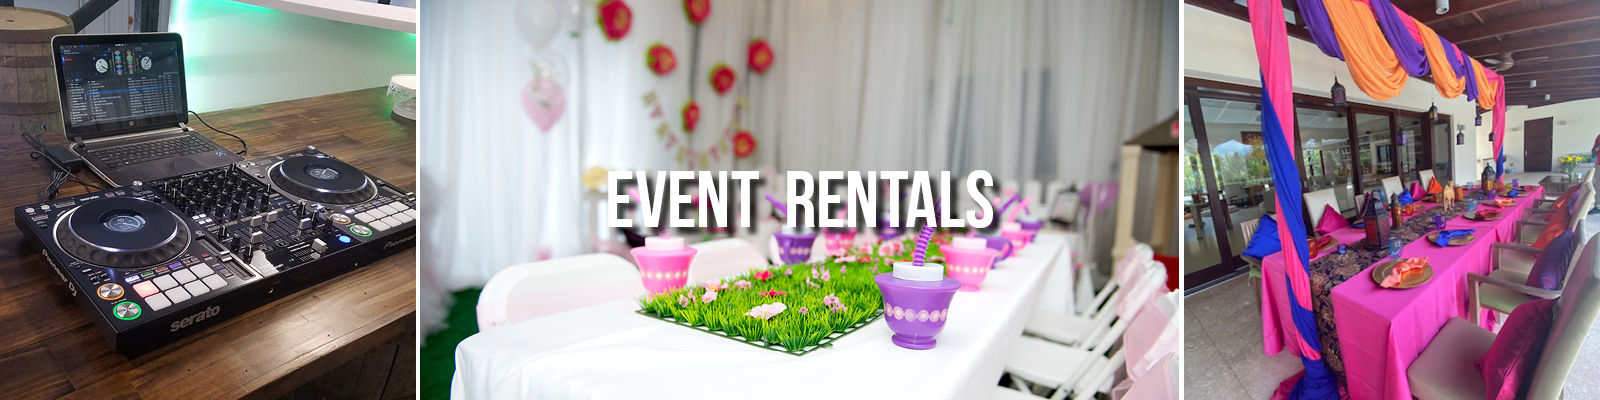 Where to rent event equipment in Grand Cayman